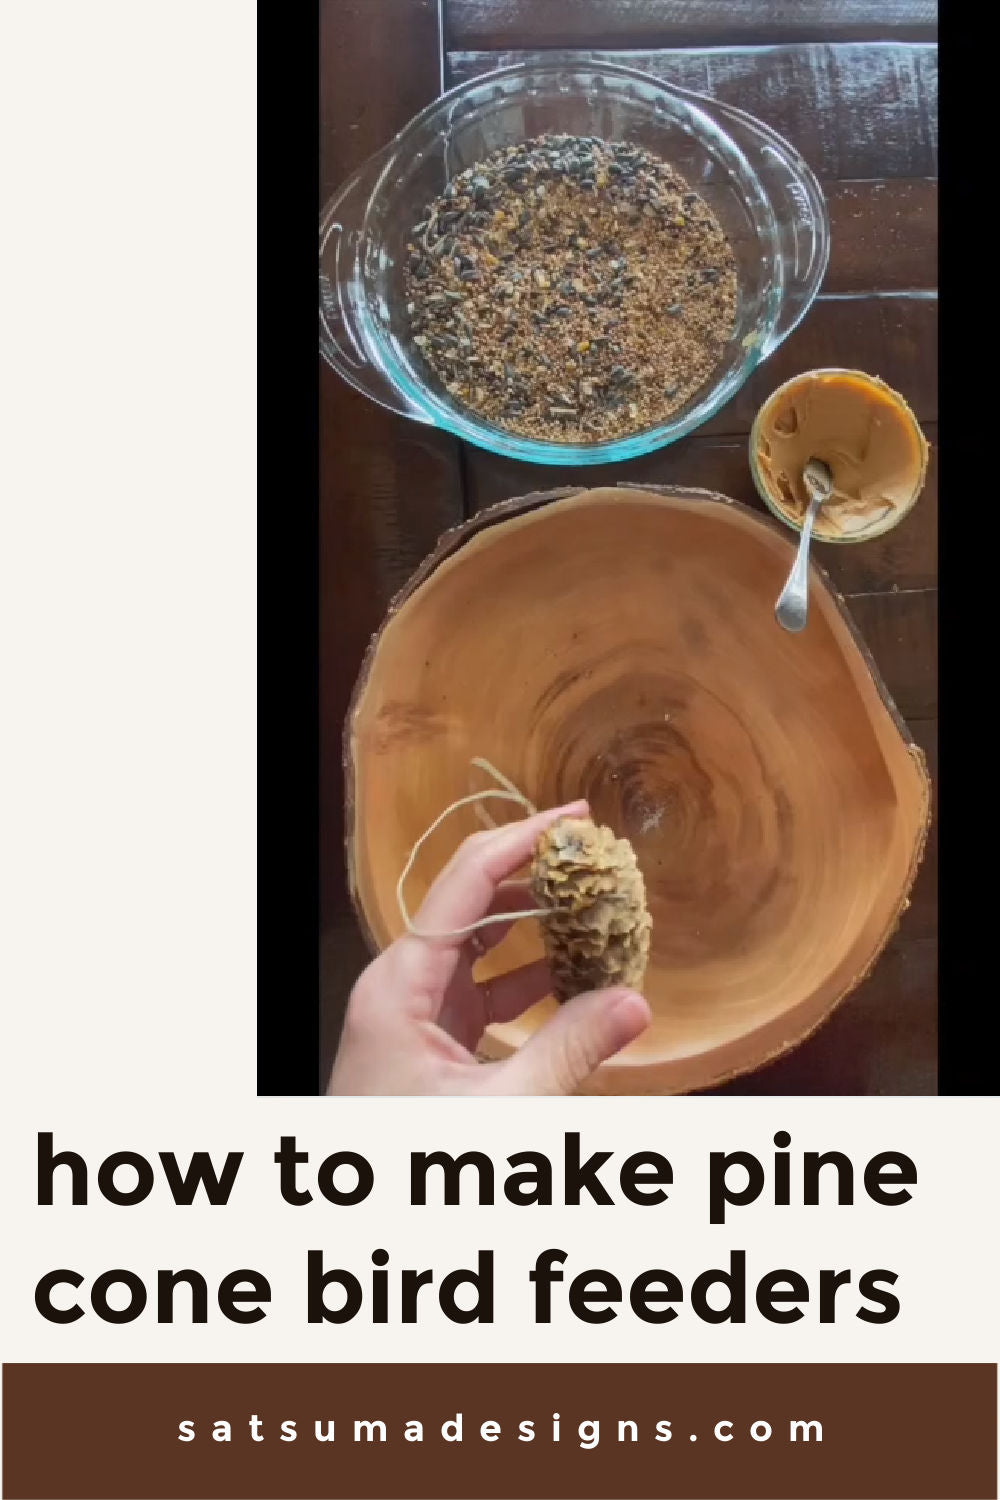 How to make easy pine cone bird feeders. This quick and fun craft will help feed birds all winter long! #craftsforkids #birdfeeder #naturalmom #upcycle